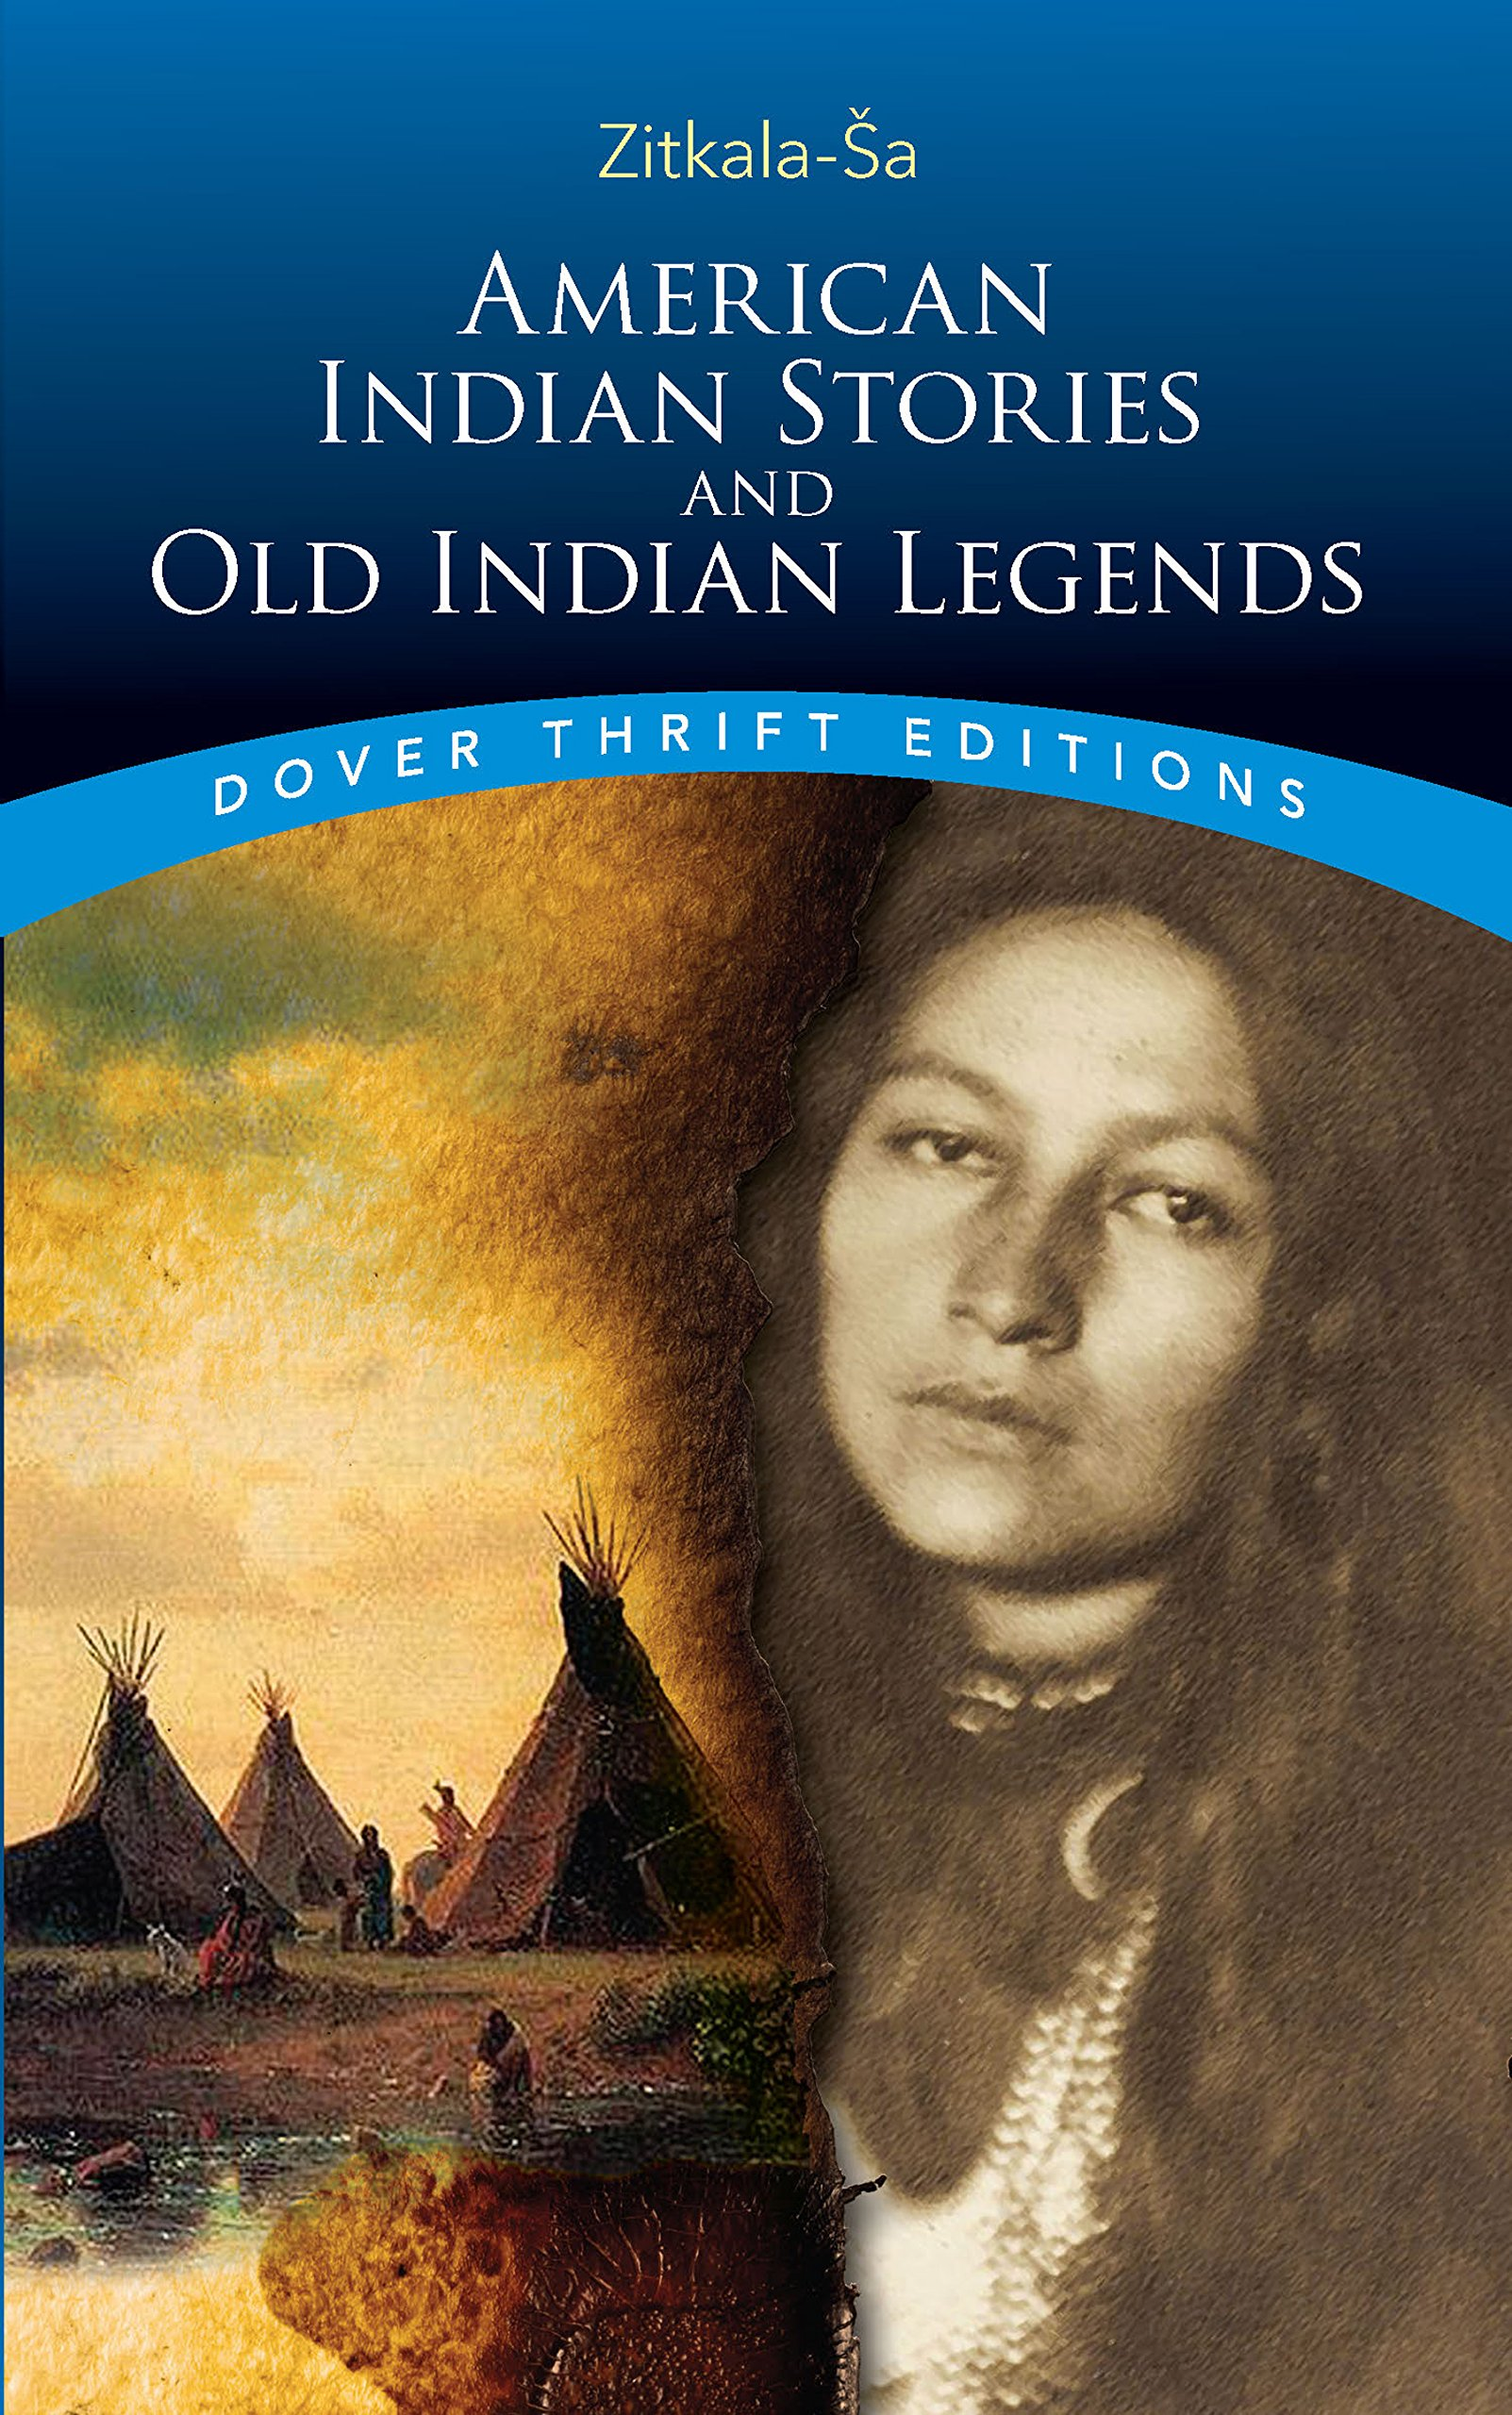 OLD INDIAN LEGENDS RETOLD BY ZITKALA-SA